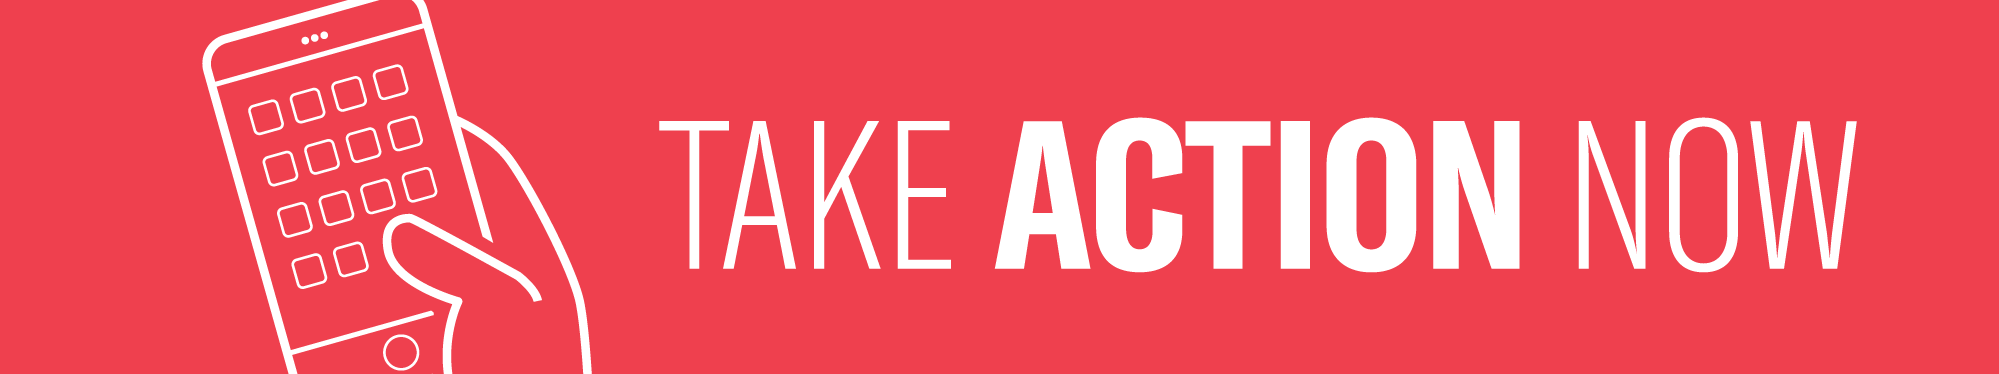 Increase access banner image